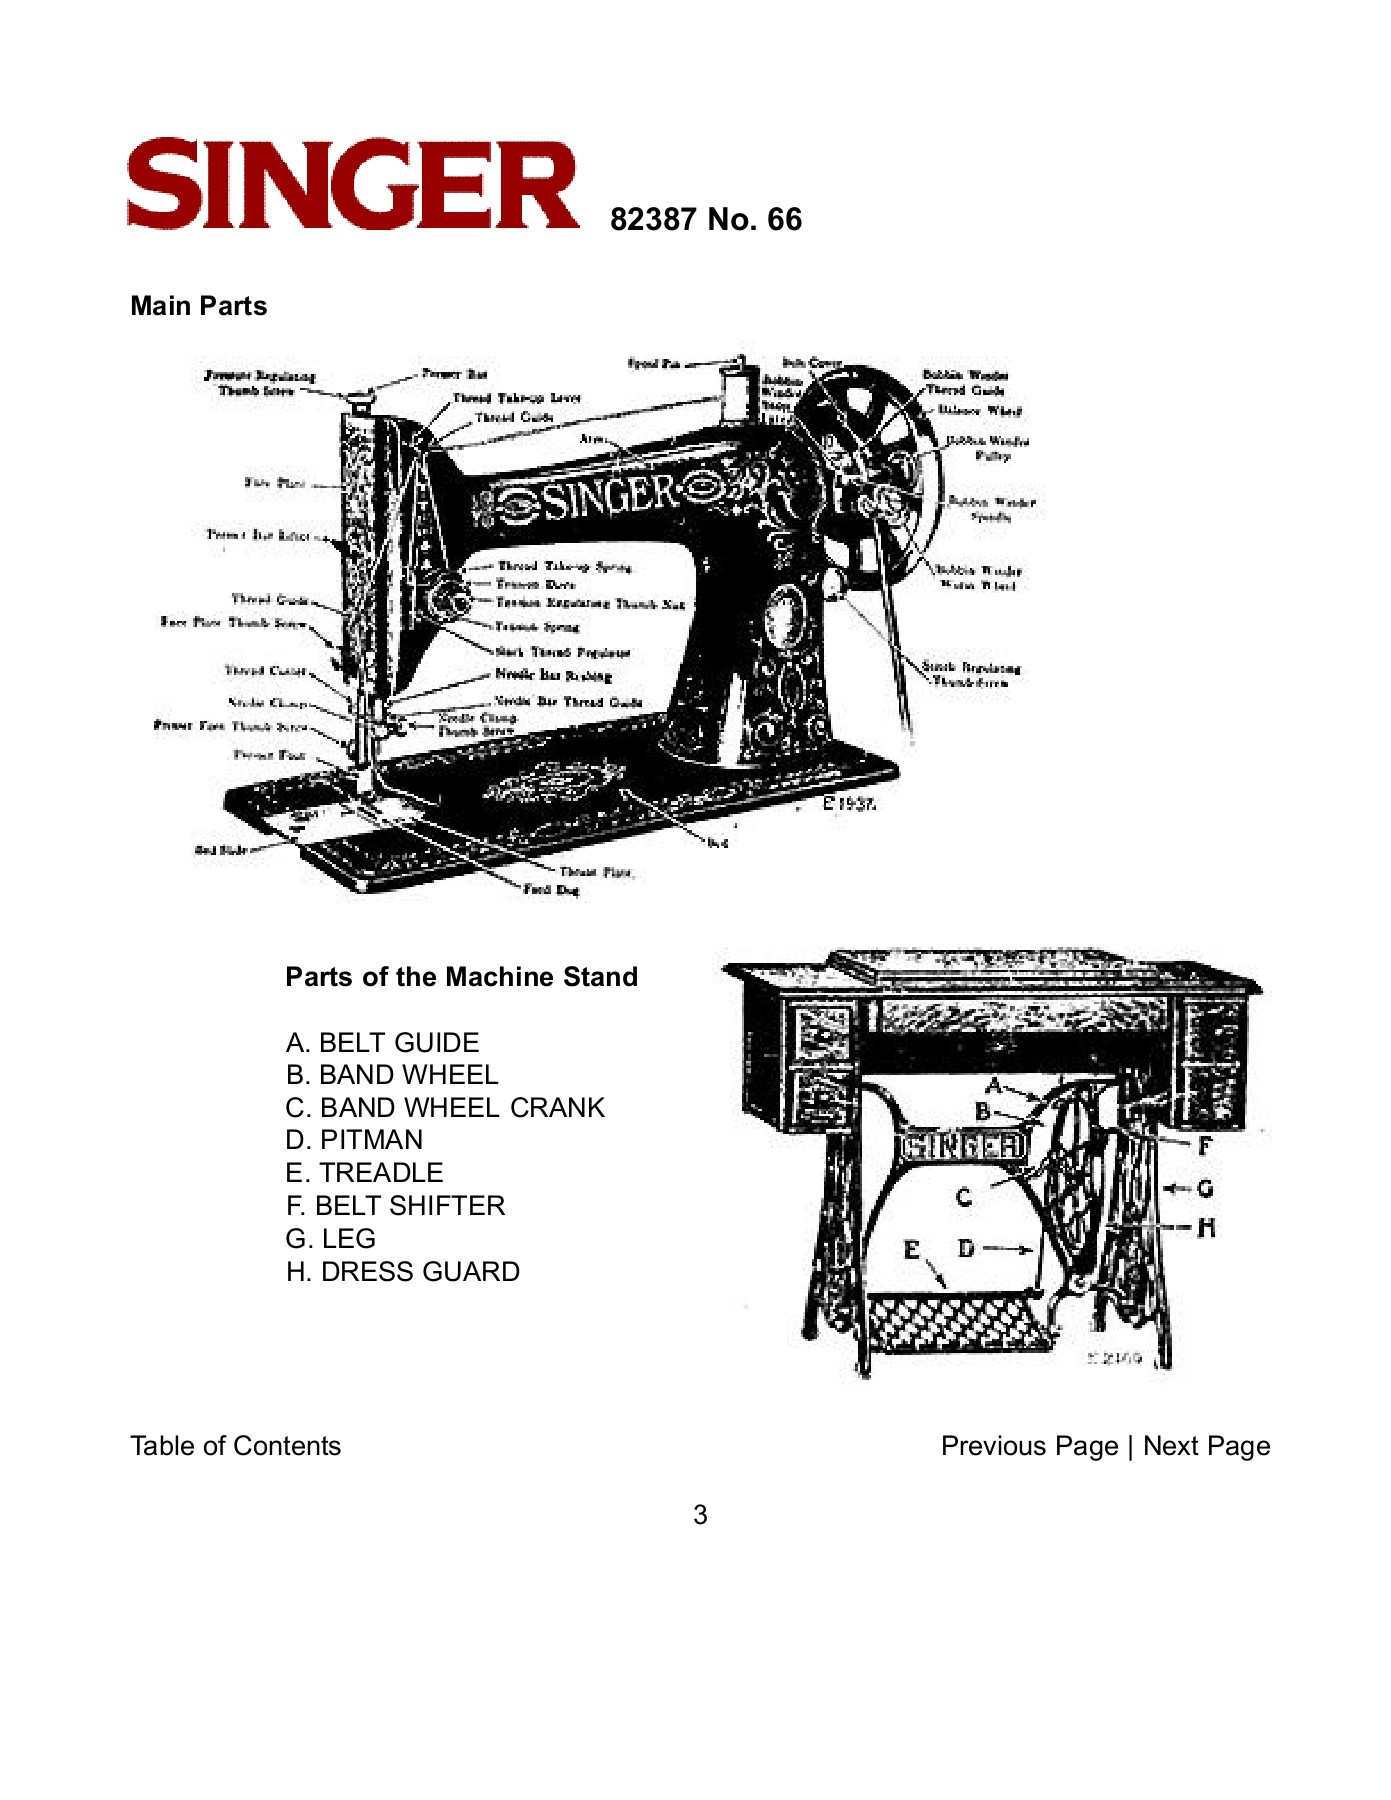 Sewing Machine Labeled : sewing, machine, labeled, Singer, Sewing, Machine, Parts, Functions